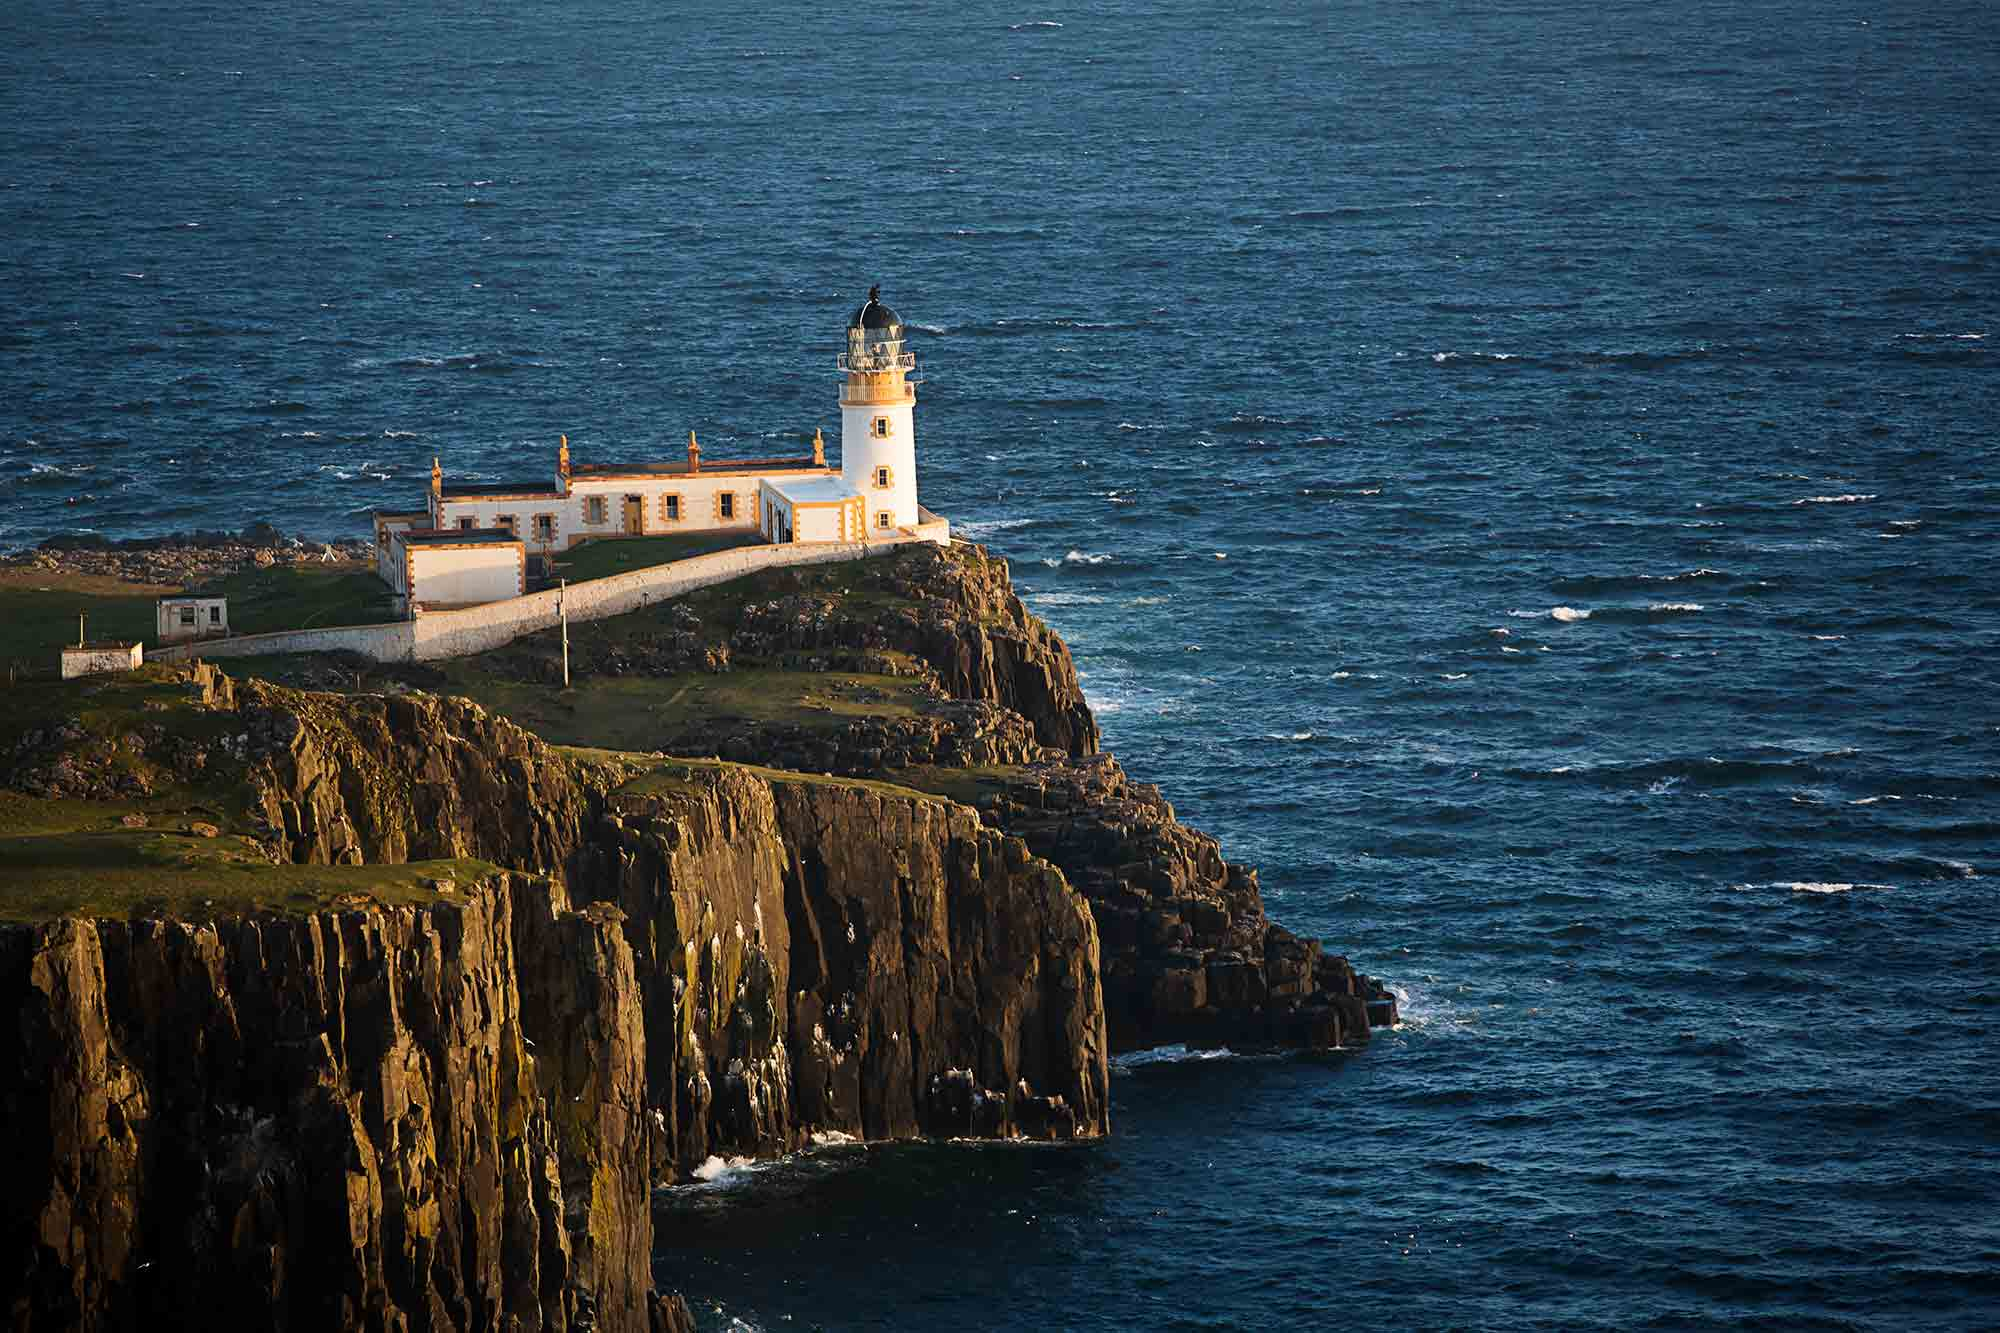 Neist Point lighthouse. © ULLI MAIER & NISA MAIER